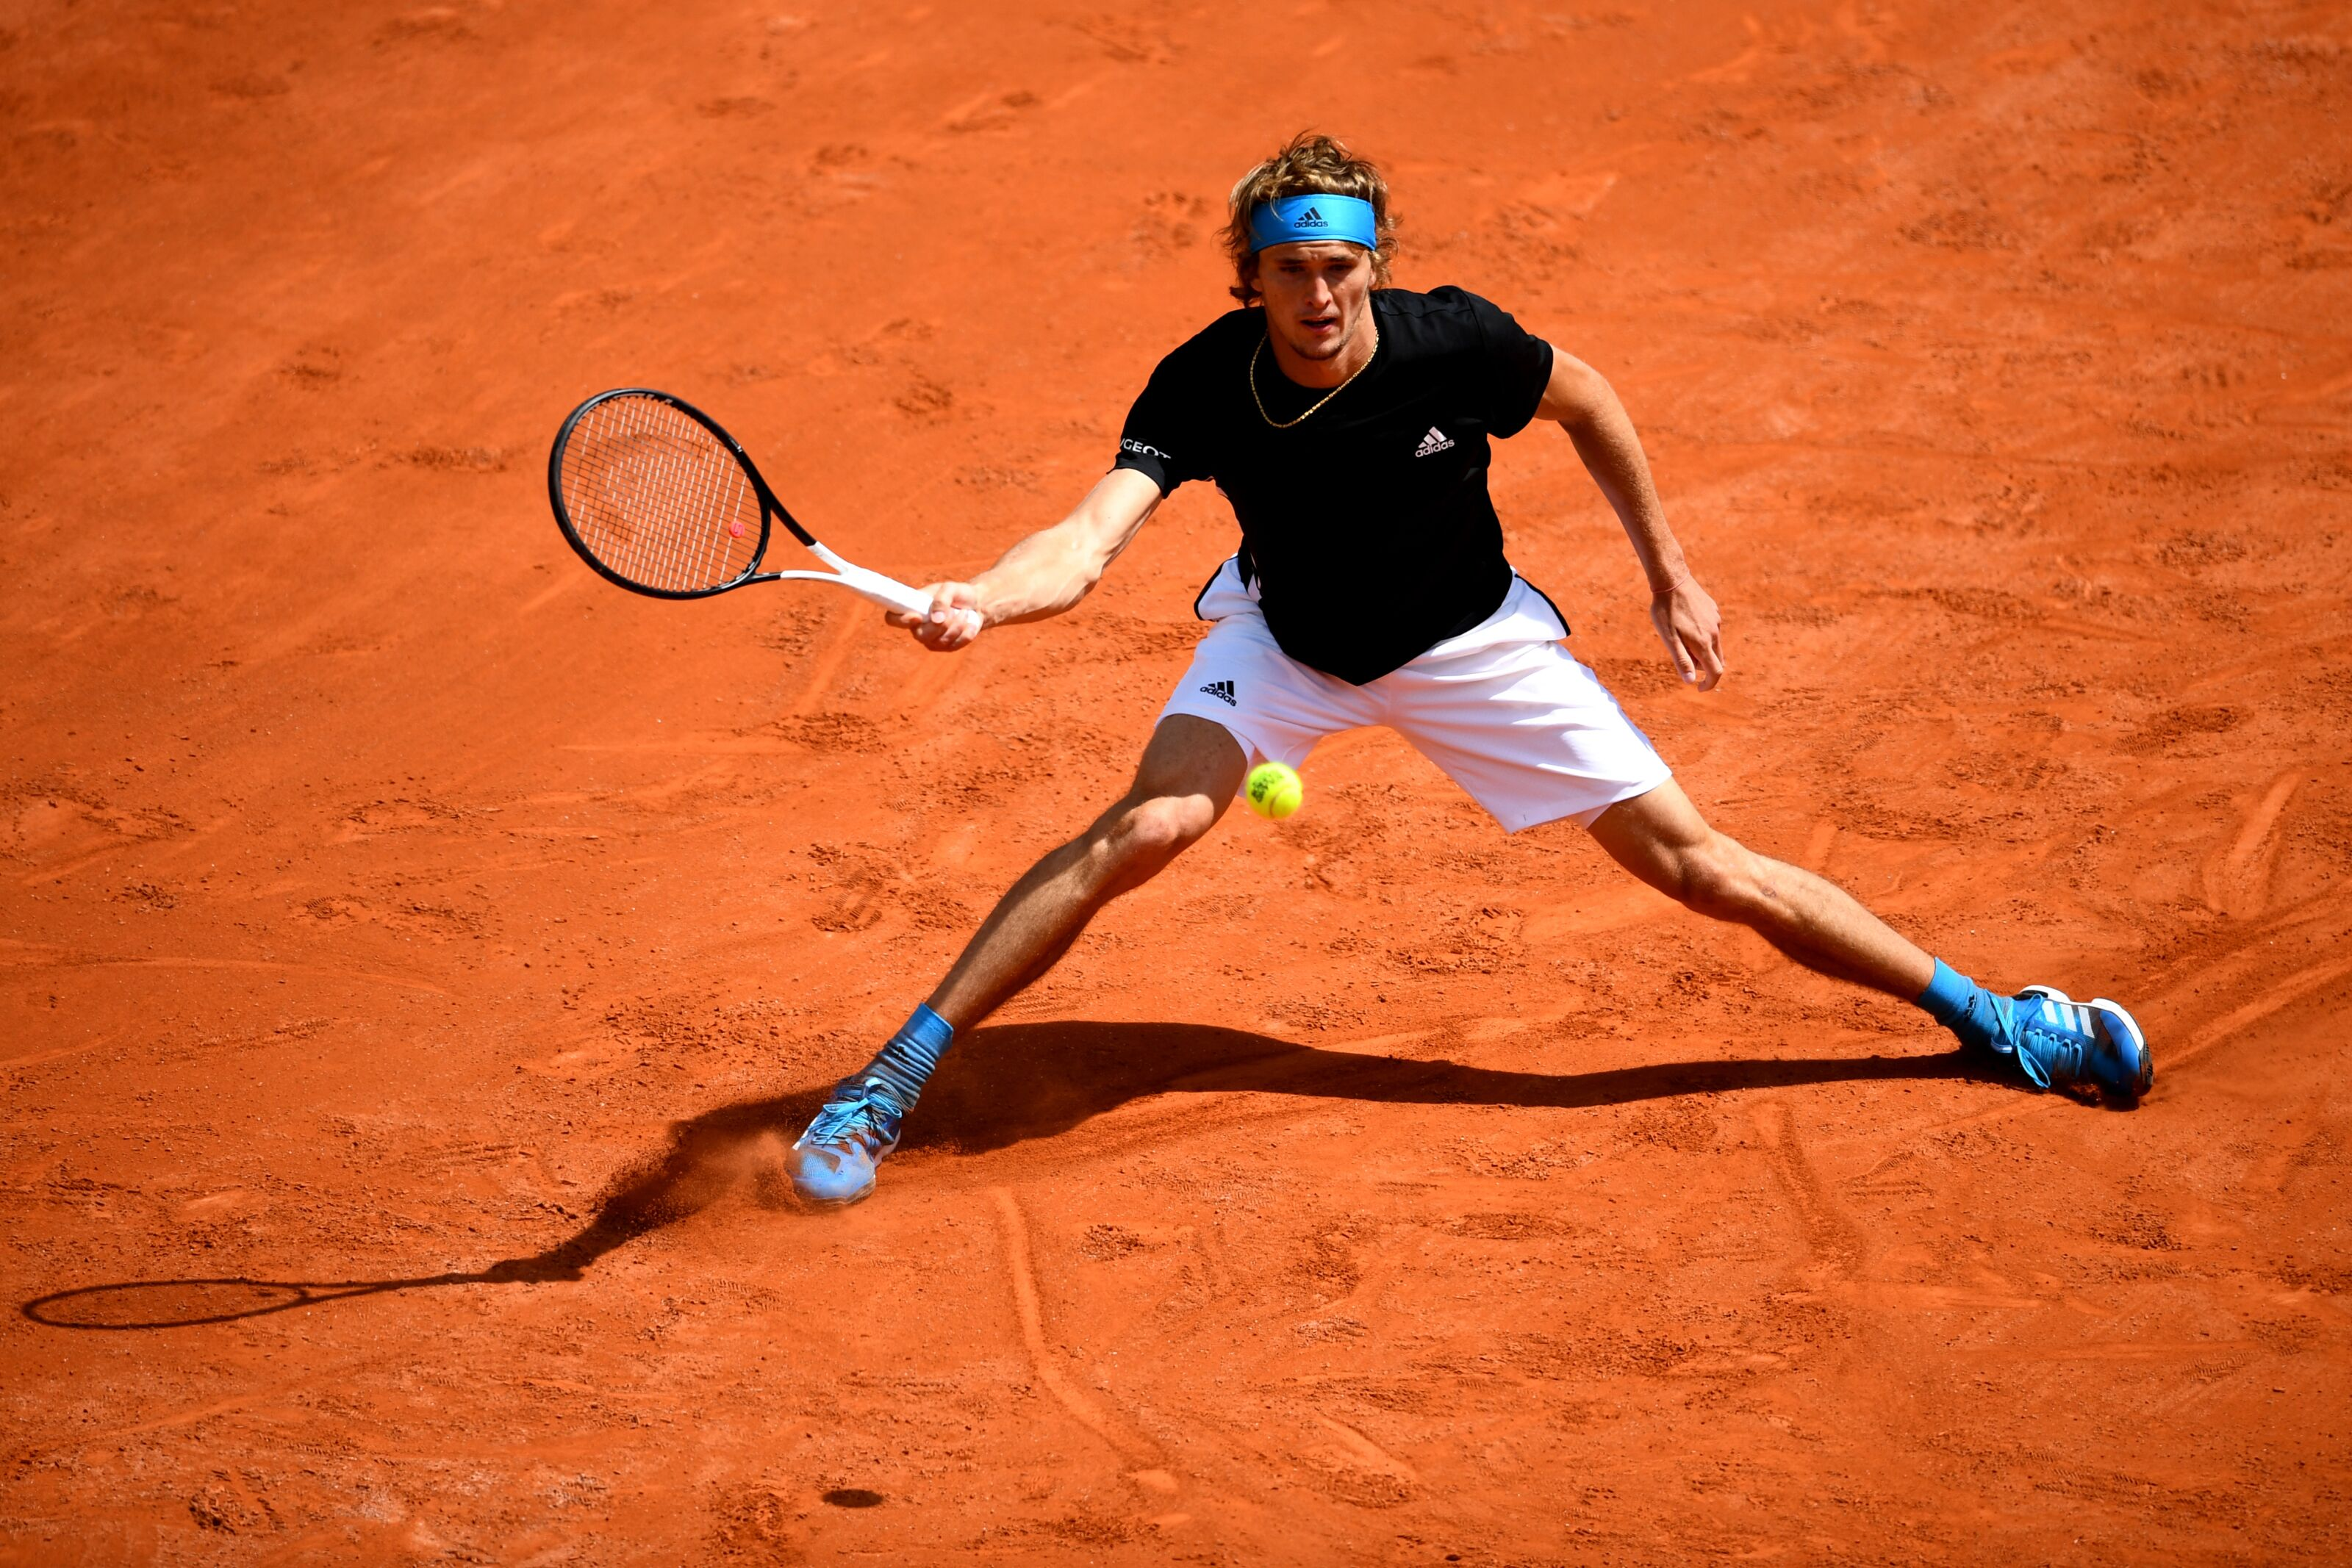 Alexander Zverev escapes first round loss at the French Open